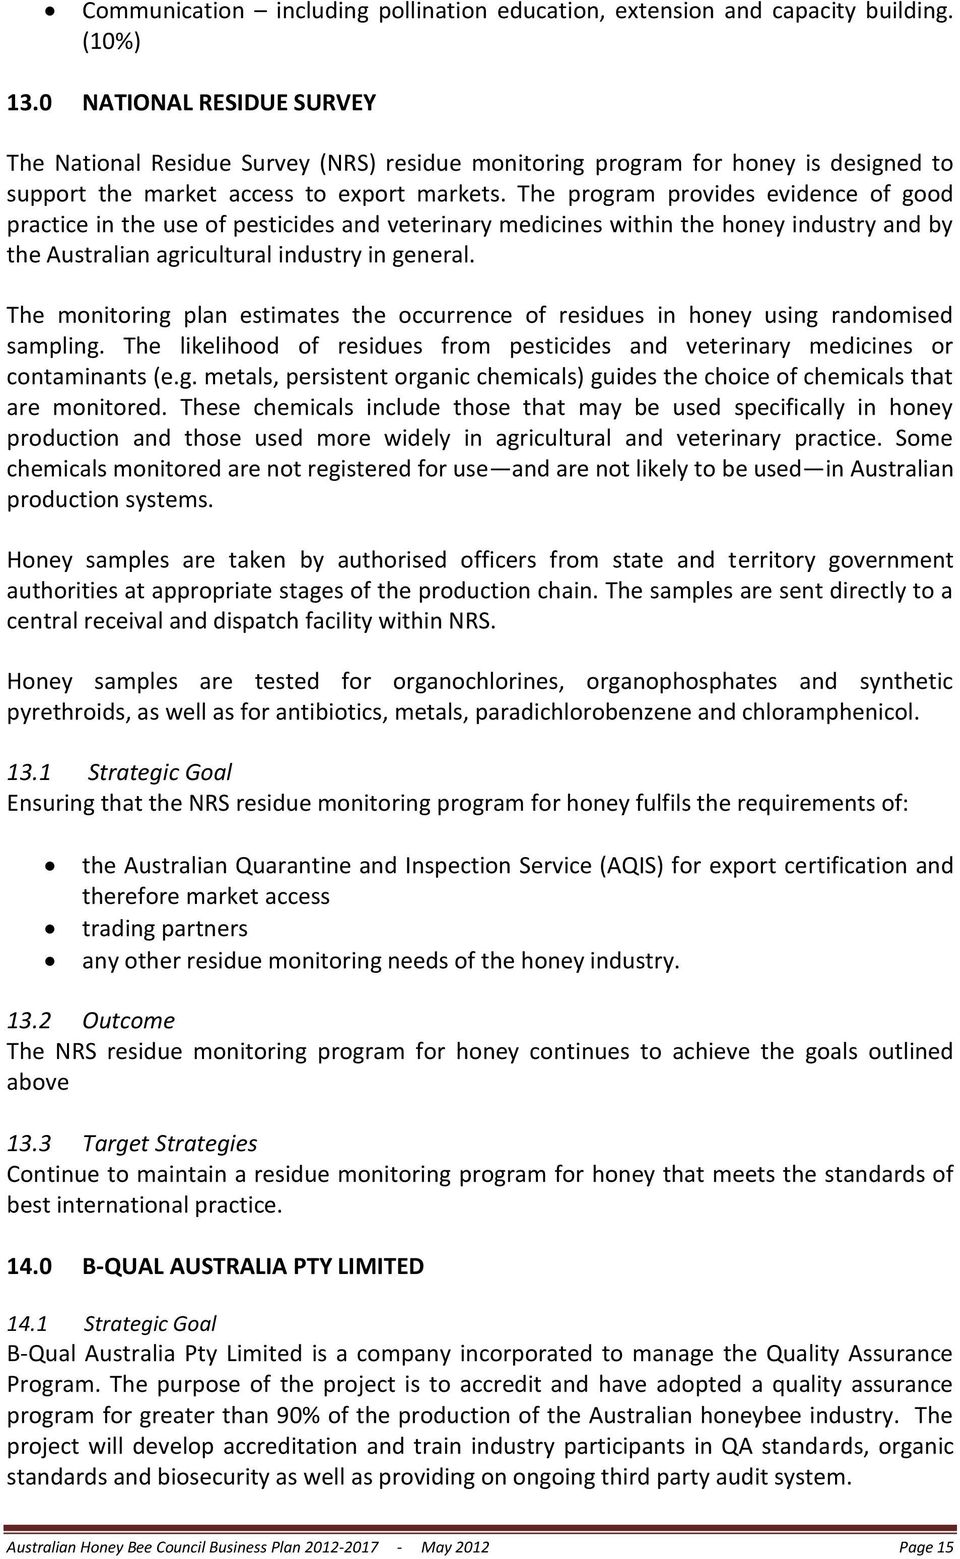 The program provides evidence of good practice in the use of pesticides and veterinary medicines within the honey industry and by the Australian agricultural industry in general.